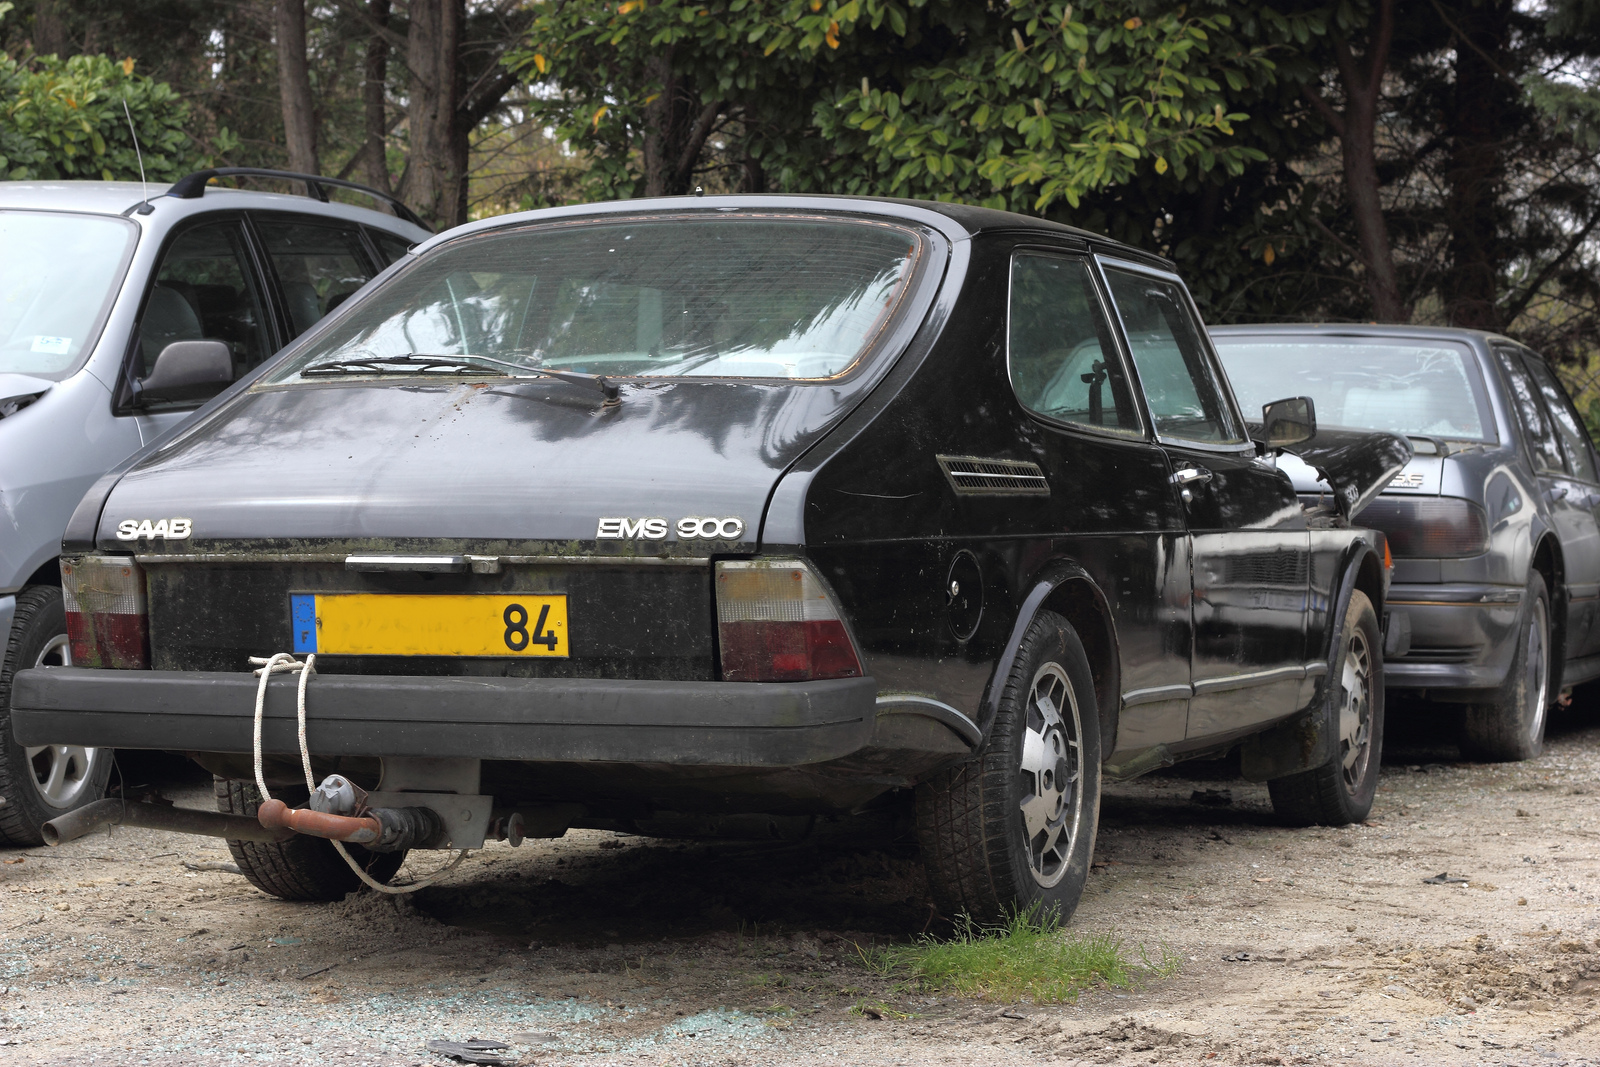 SAAB 900 EMS '80. | Flickr - Photo Sharing!